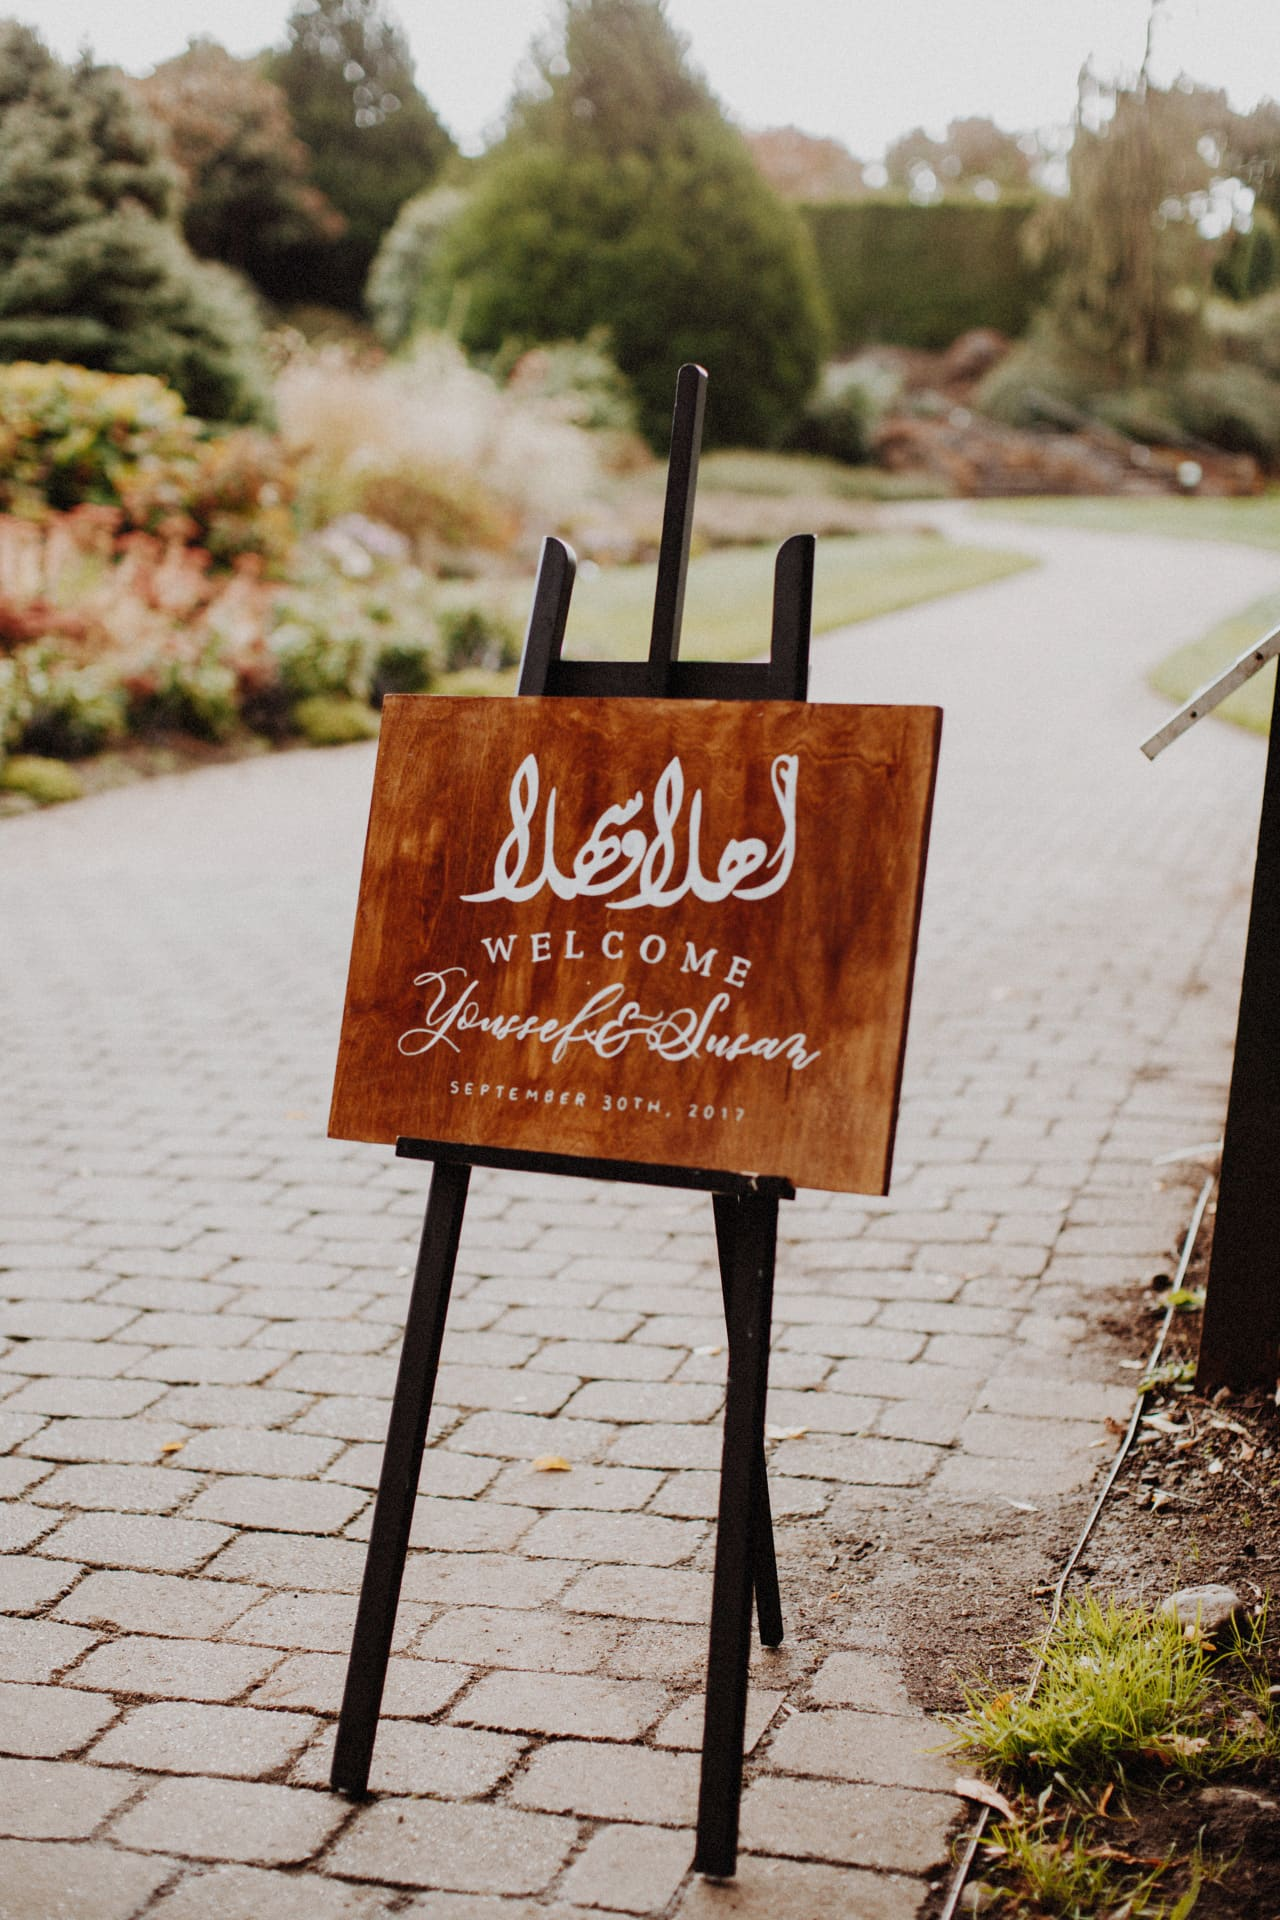 a welcome sign at the Oregon garden resort